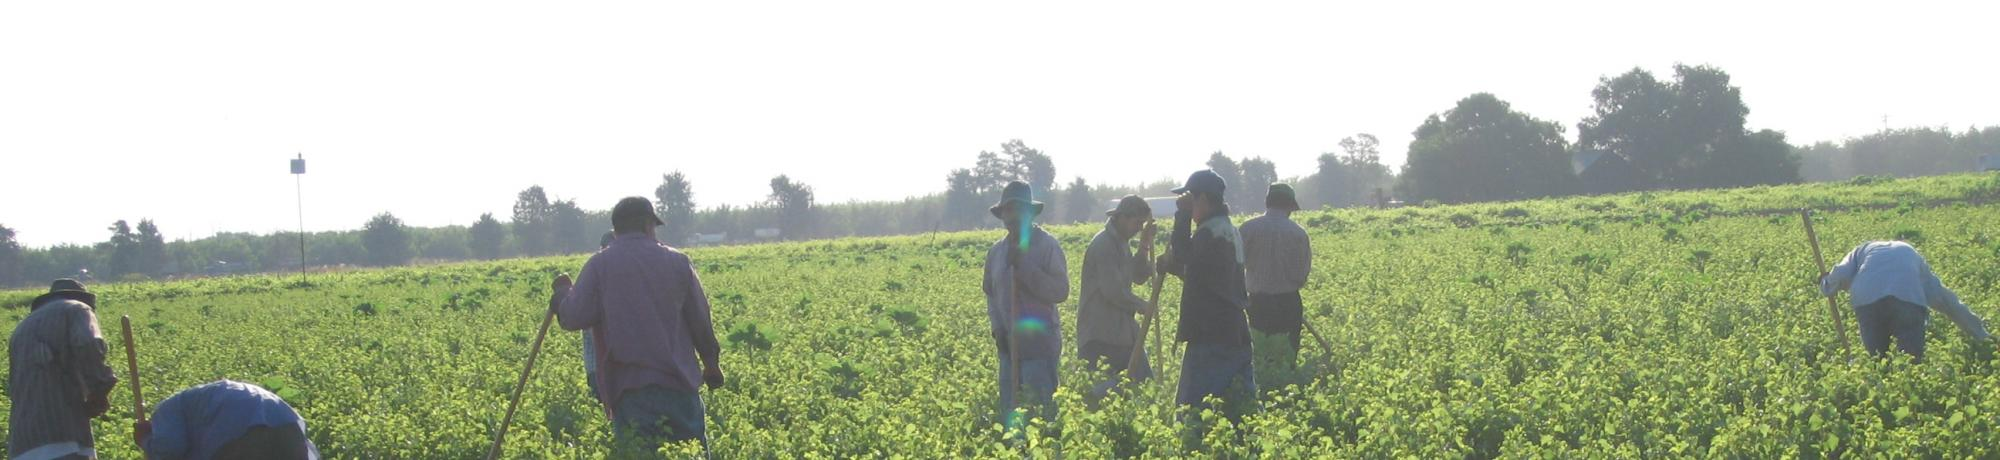 Farmworkers weeding crops in field